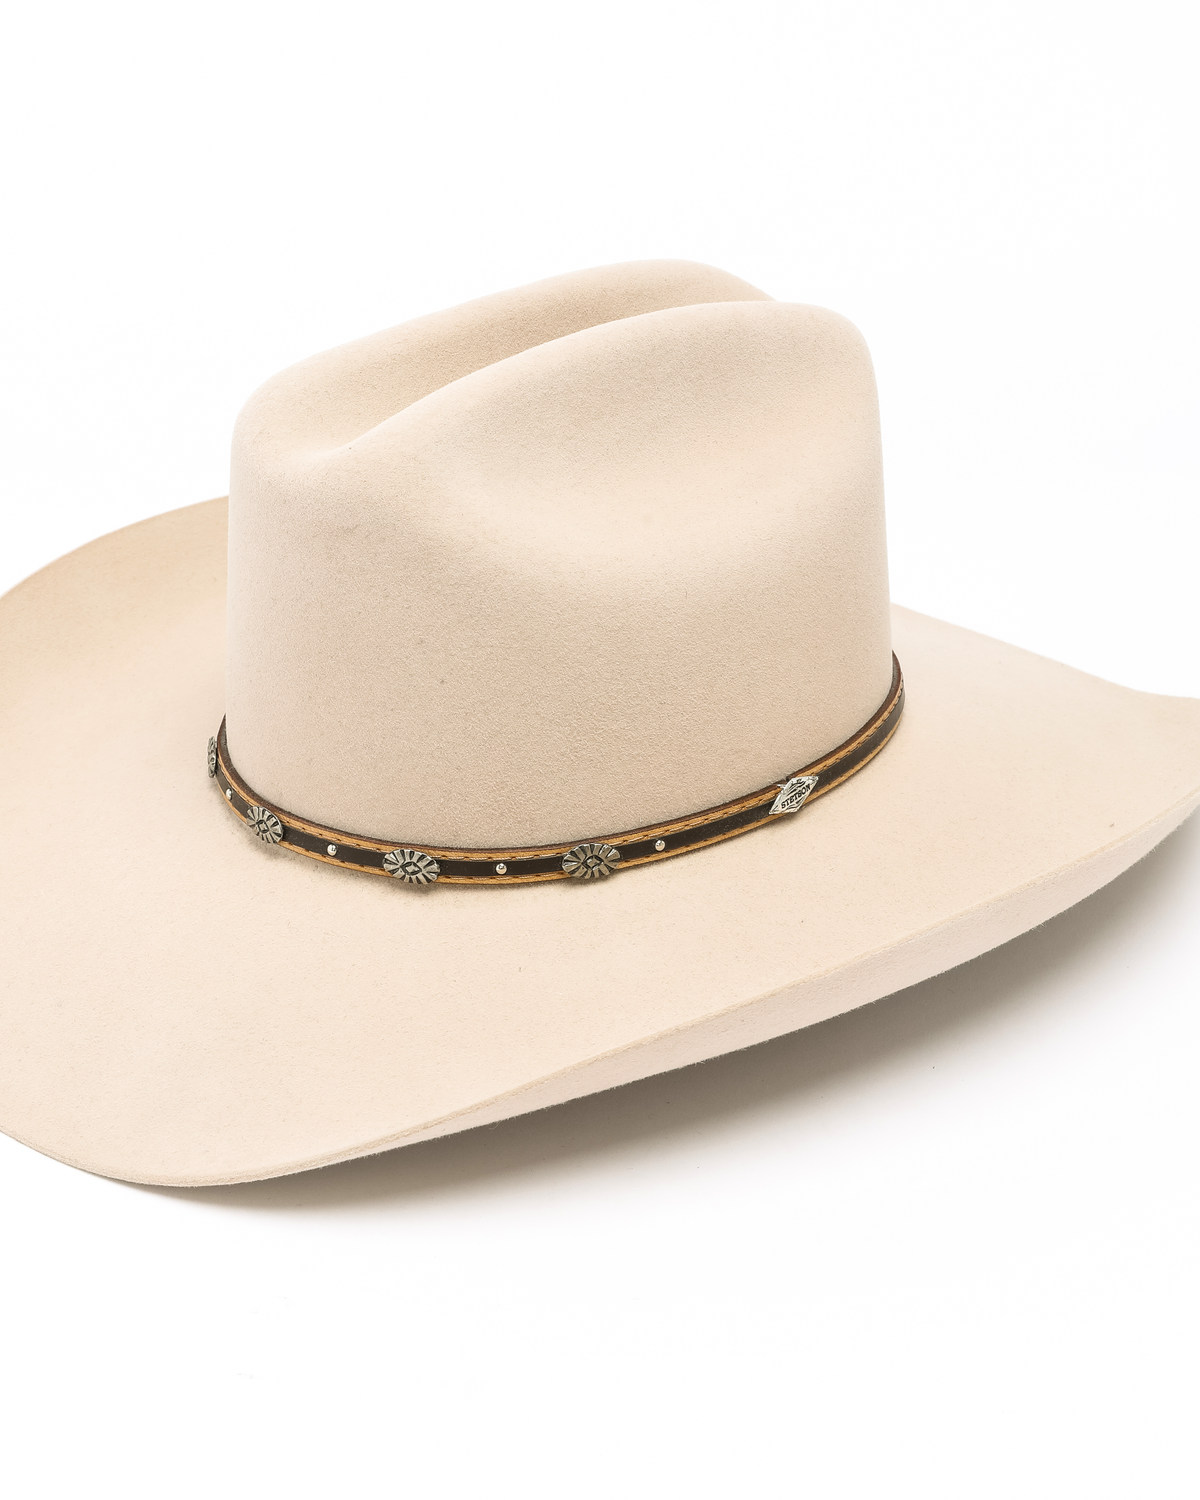 53eff9e9bc59e Stetson Men s Oak Creek 6x Felt Hat